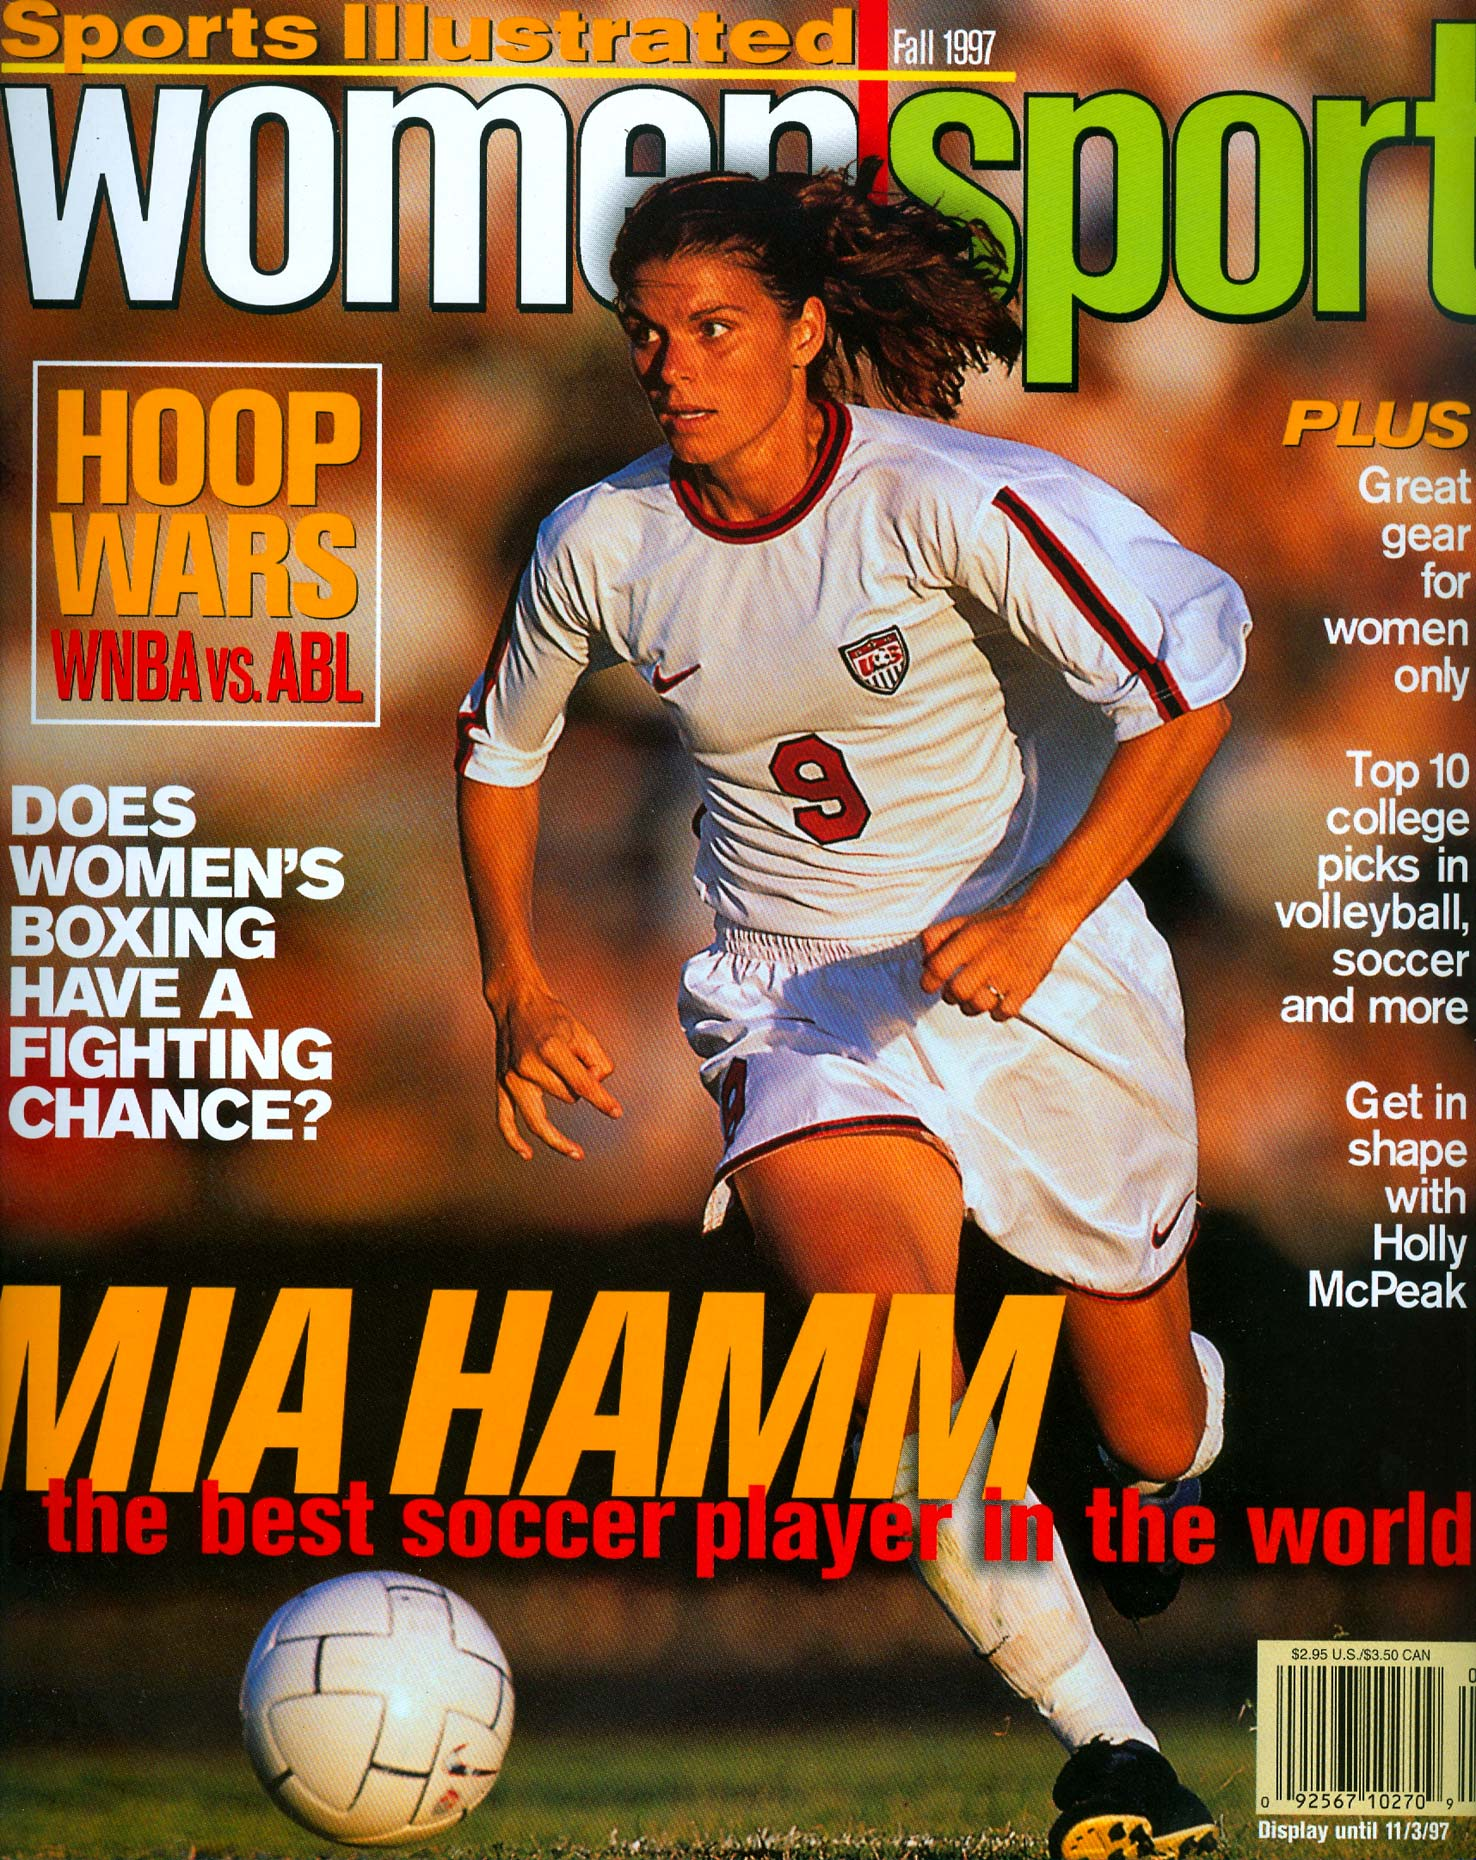 Soccer star Mia Hamm is featured on the cover of Sports Illustrated for Women.